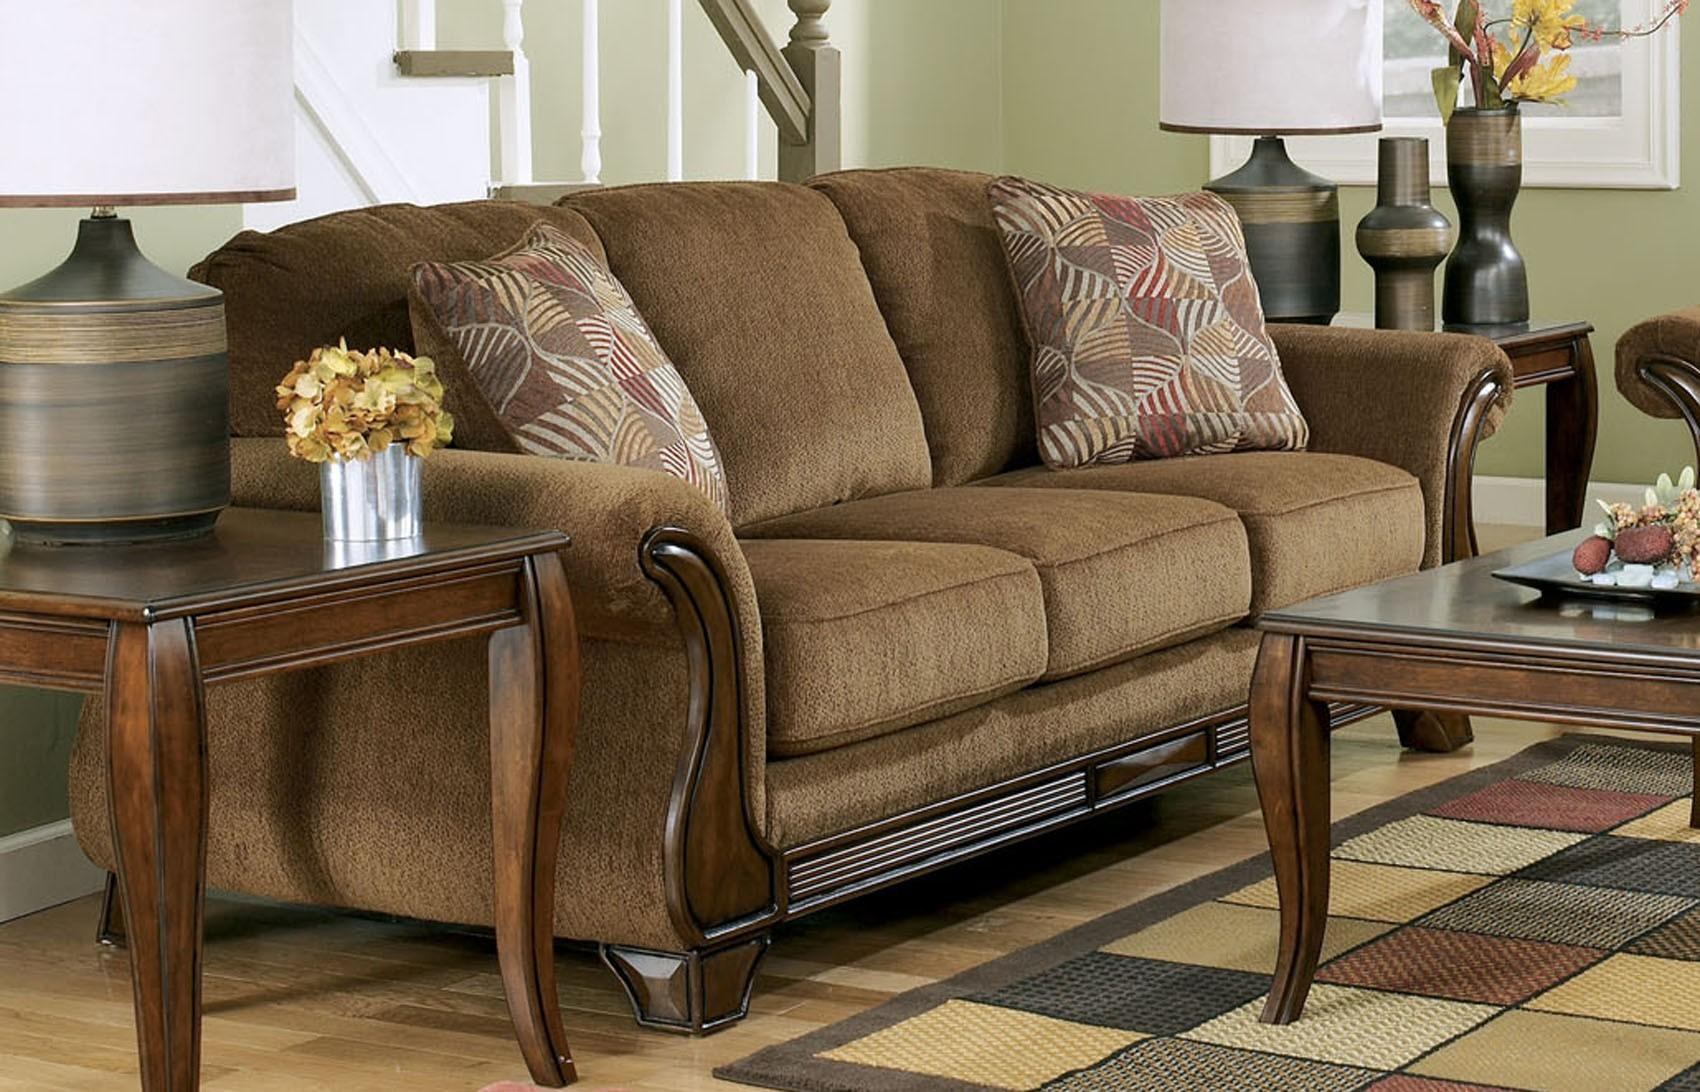 Sofas Center : Ashley Furniture Recliner Sofas Microfibert Inside Ashley Furniture Brown Corduroy Sectional Sofas (View 20 of 20)